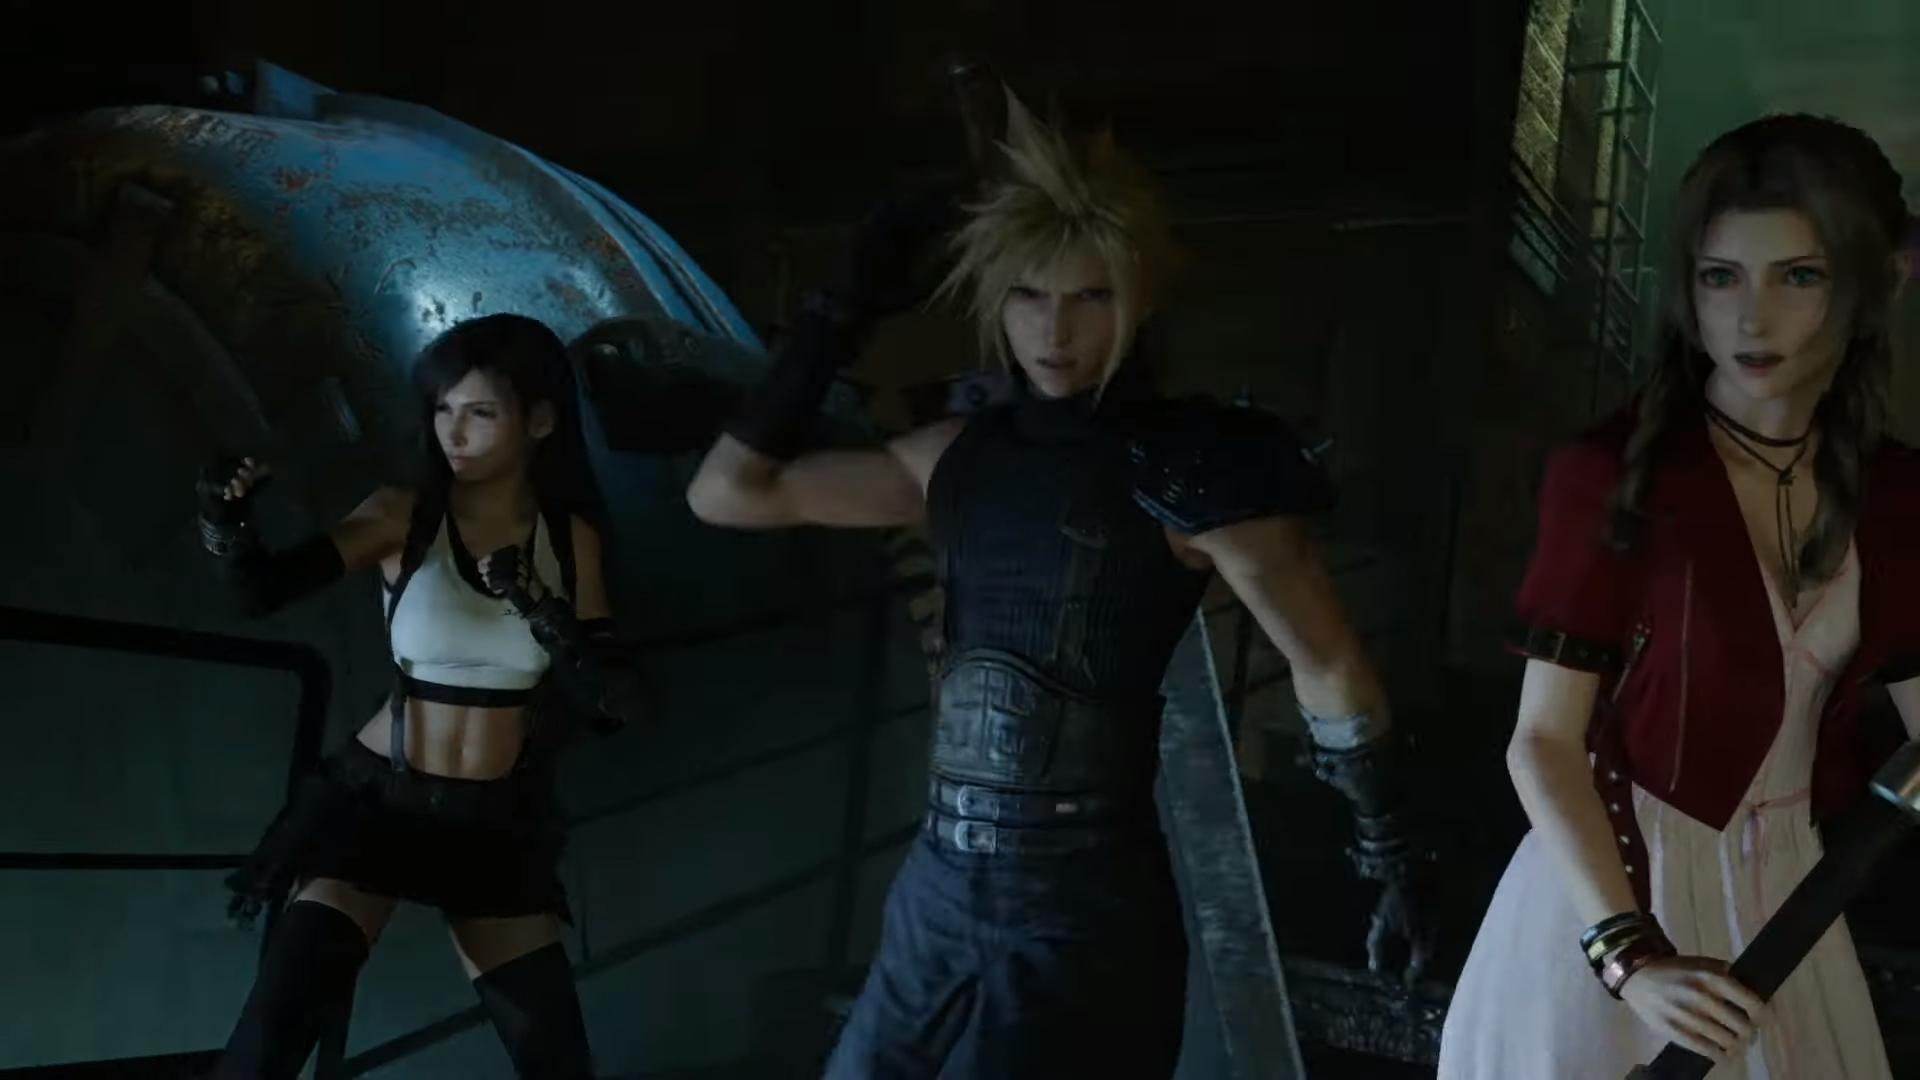 Download 84 Wallpaper Engine Final Fantasy Vii Gratis Terbaru